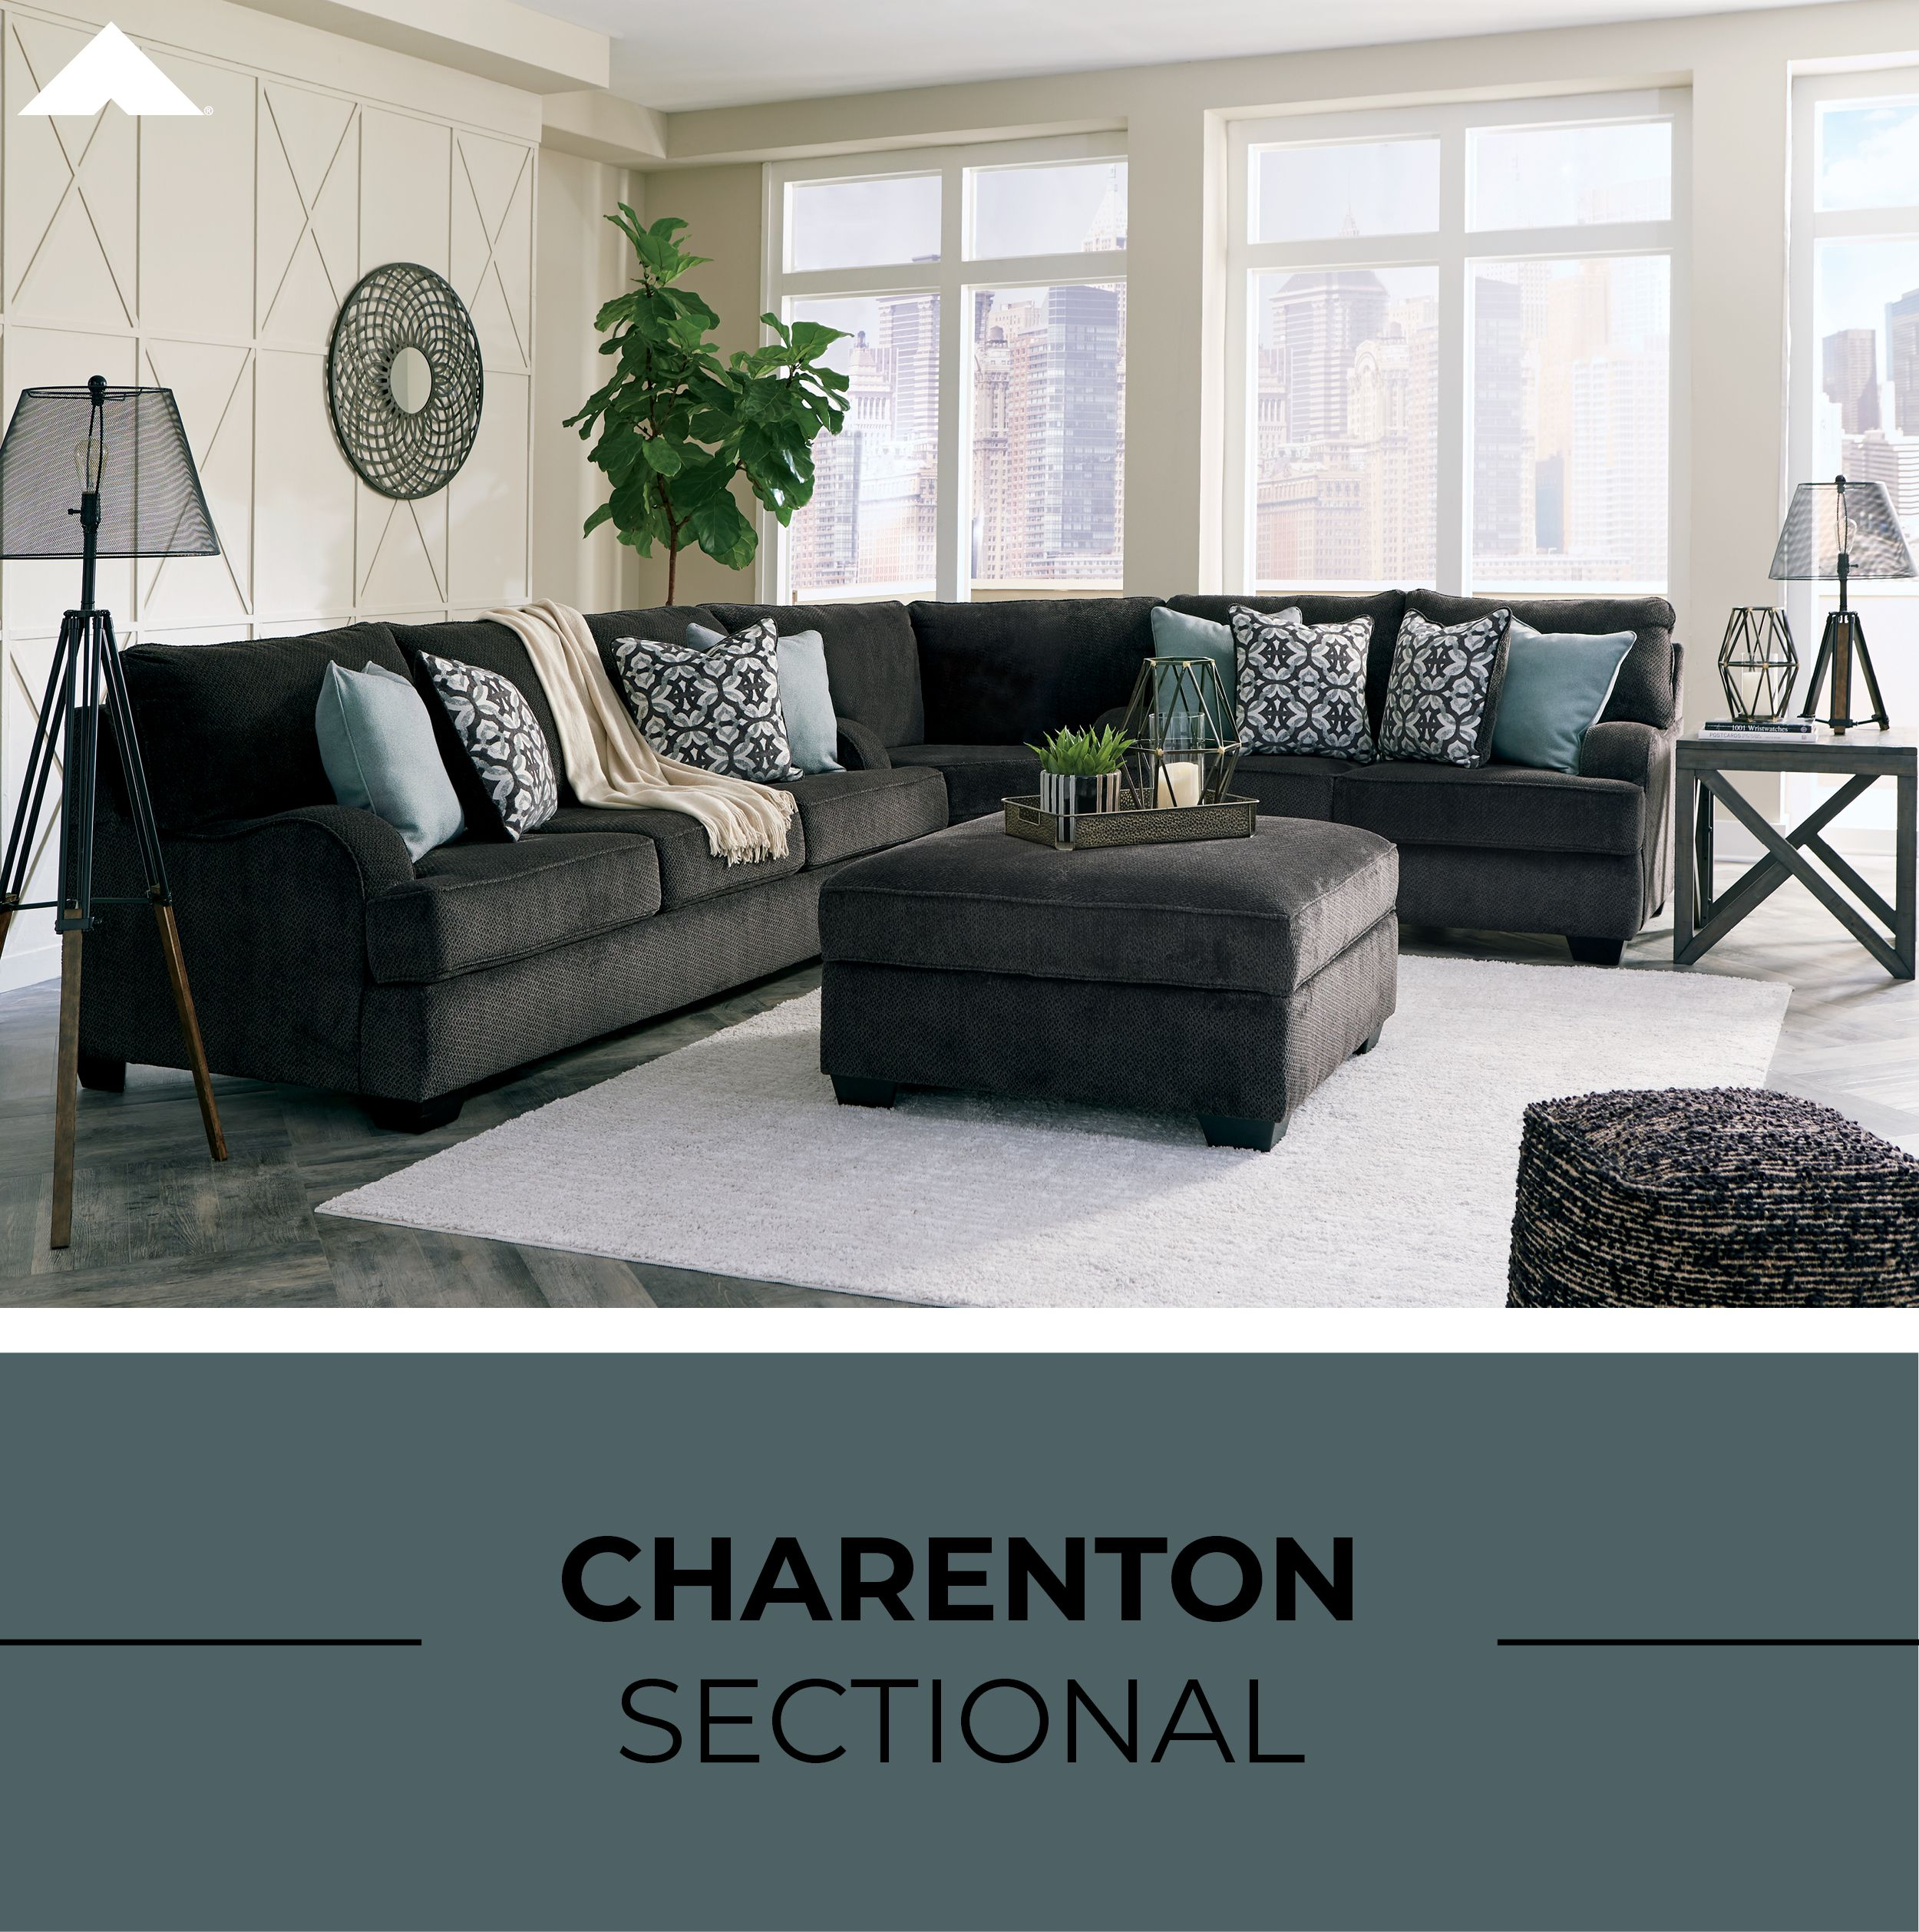 Charenton Charcoal Sectional By Ashley Furniture Ashleyfurniture Homedecor Homedecorinspiration Livingro Furniture Ashley Furniture Sofas Sofa Furniture